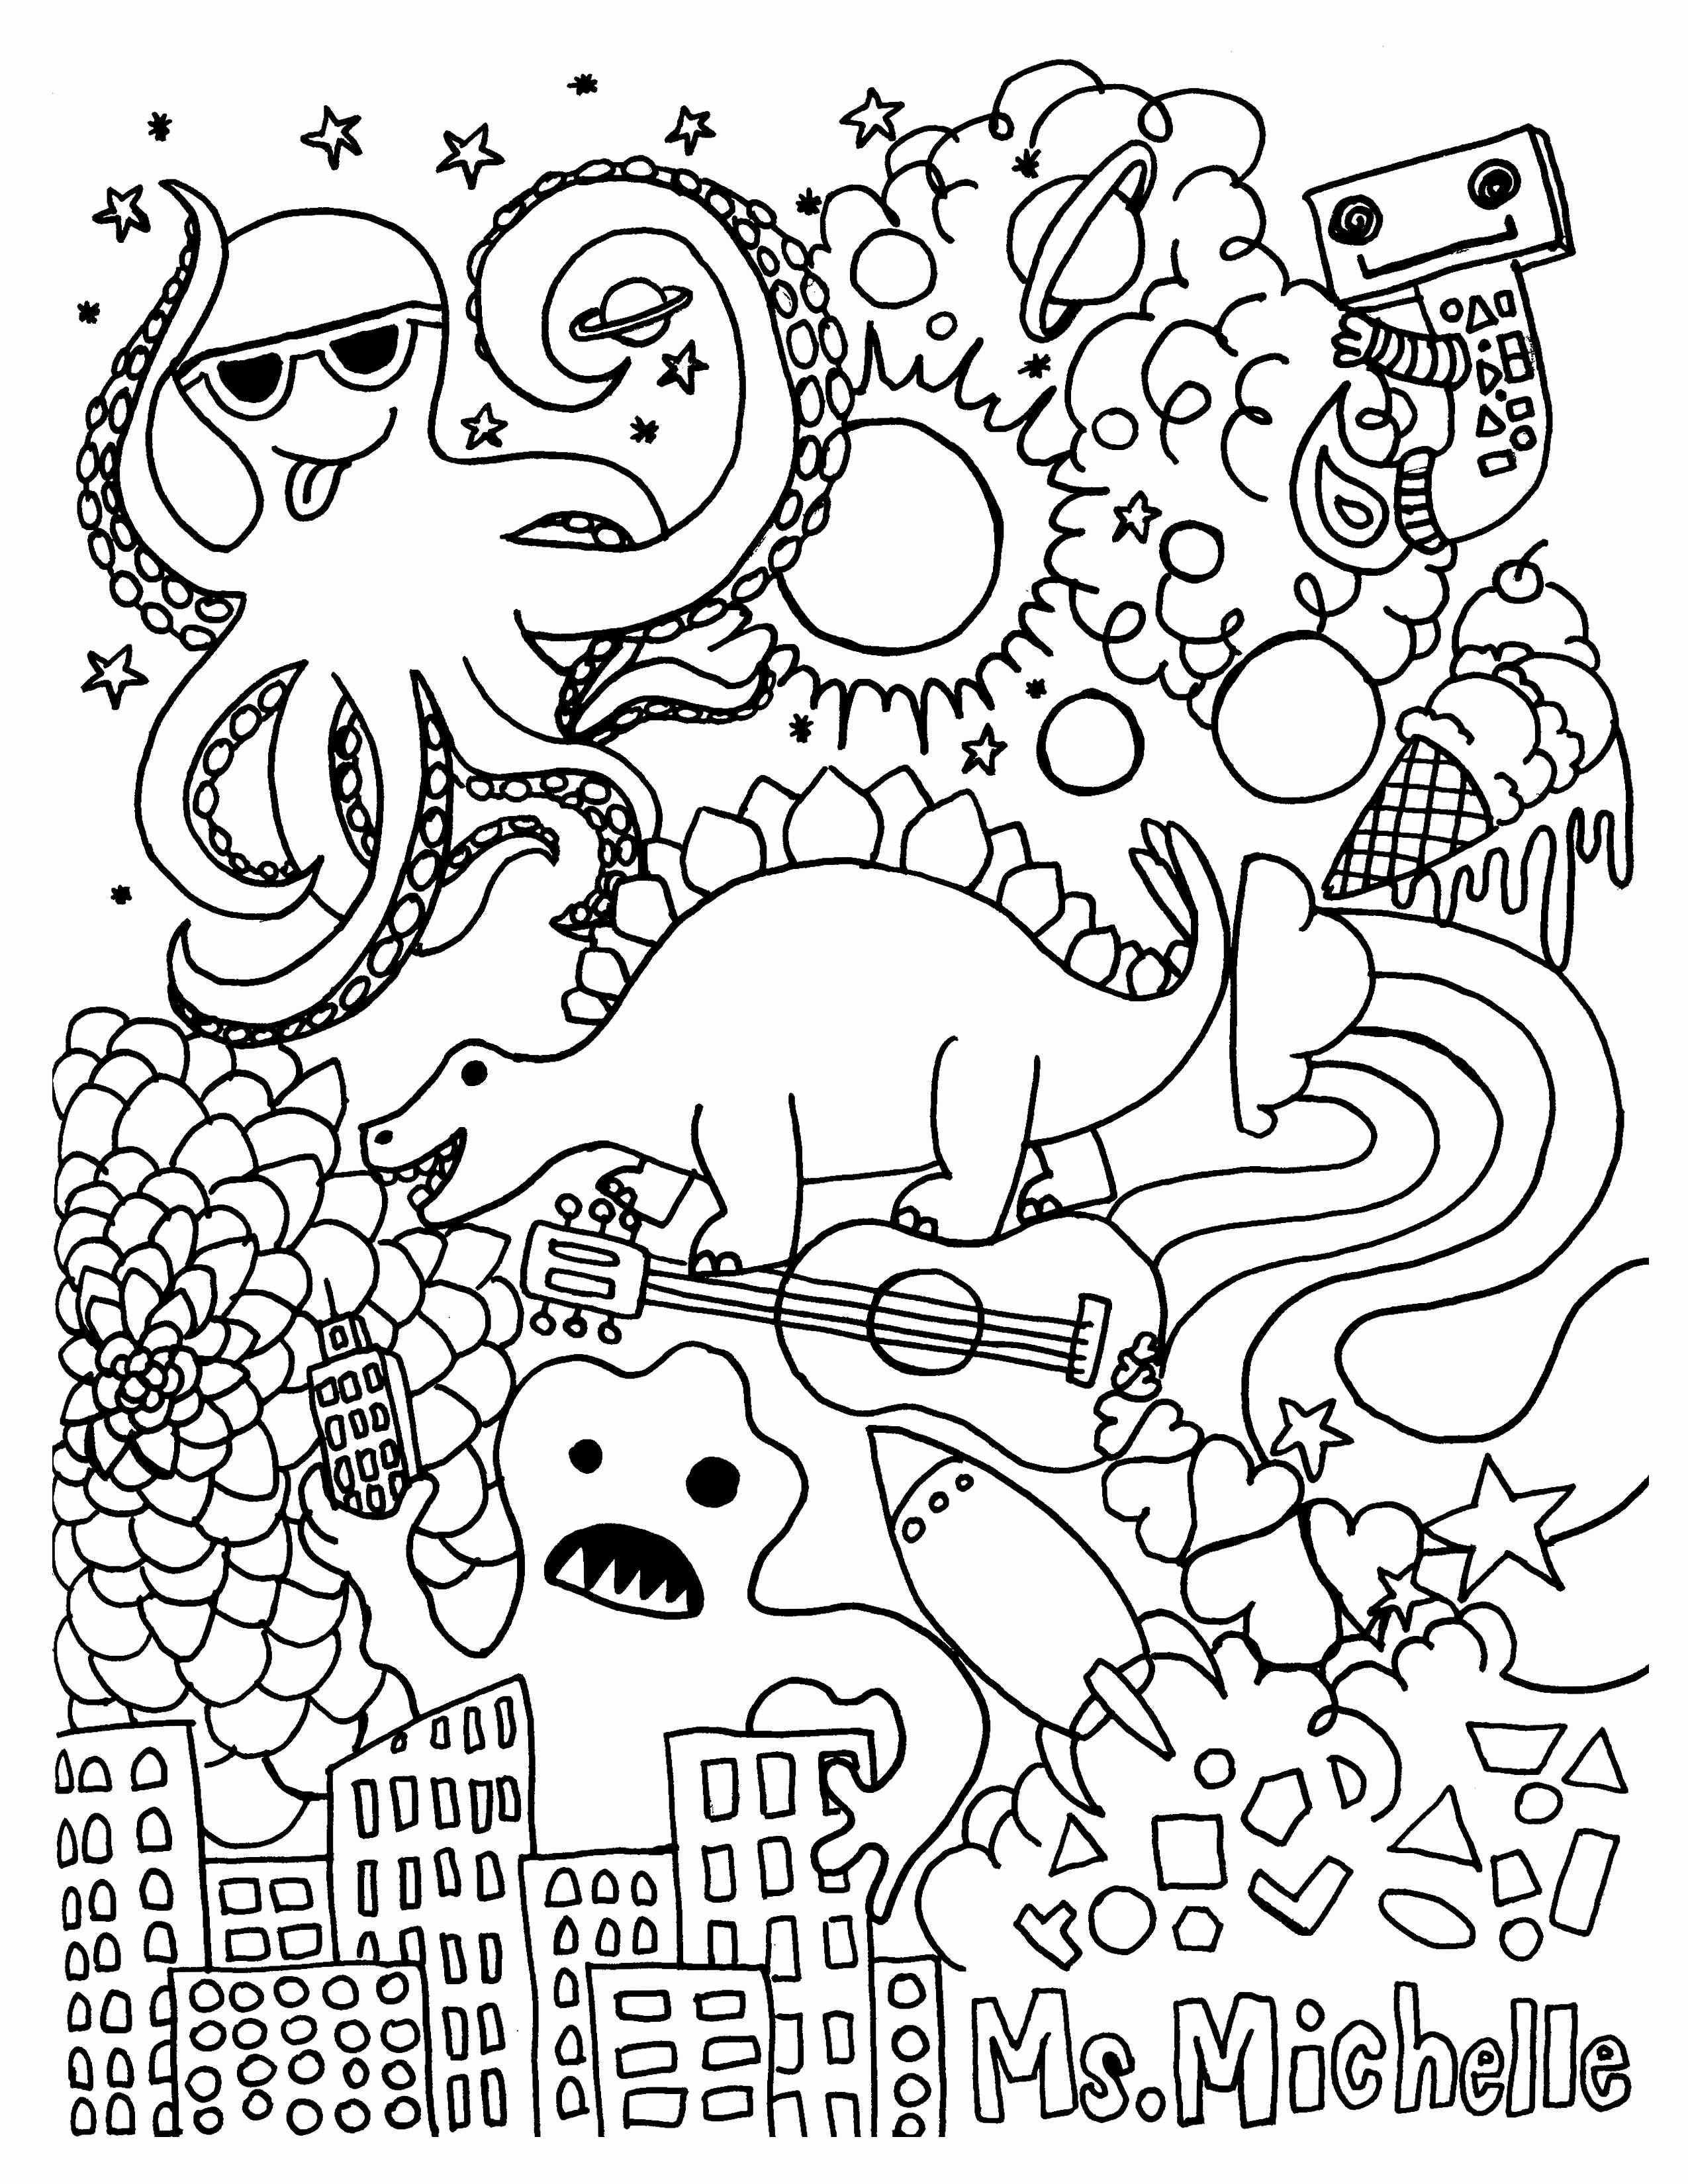 nickeloden coloring pages Download-Free Coloring Pages for Adults Halloween Free Coloring Pages Bible Awesome Free Coloring Pages for 8-n